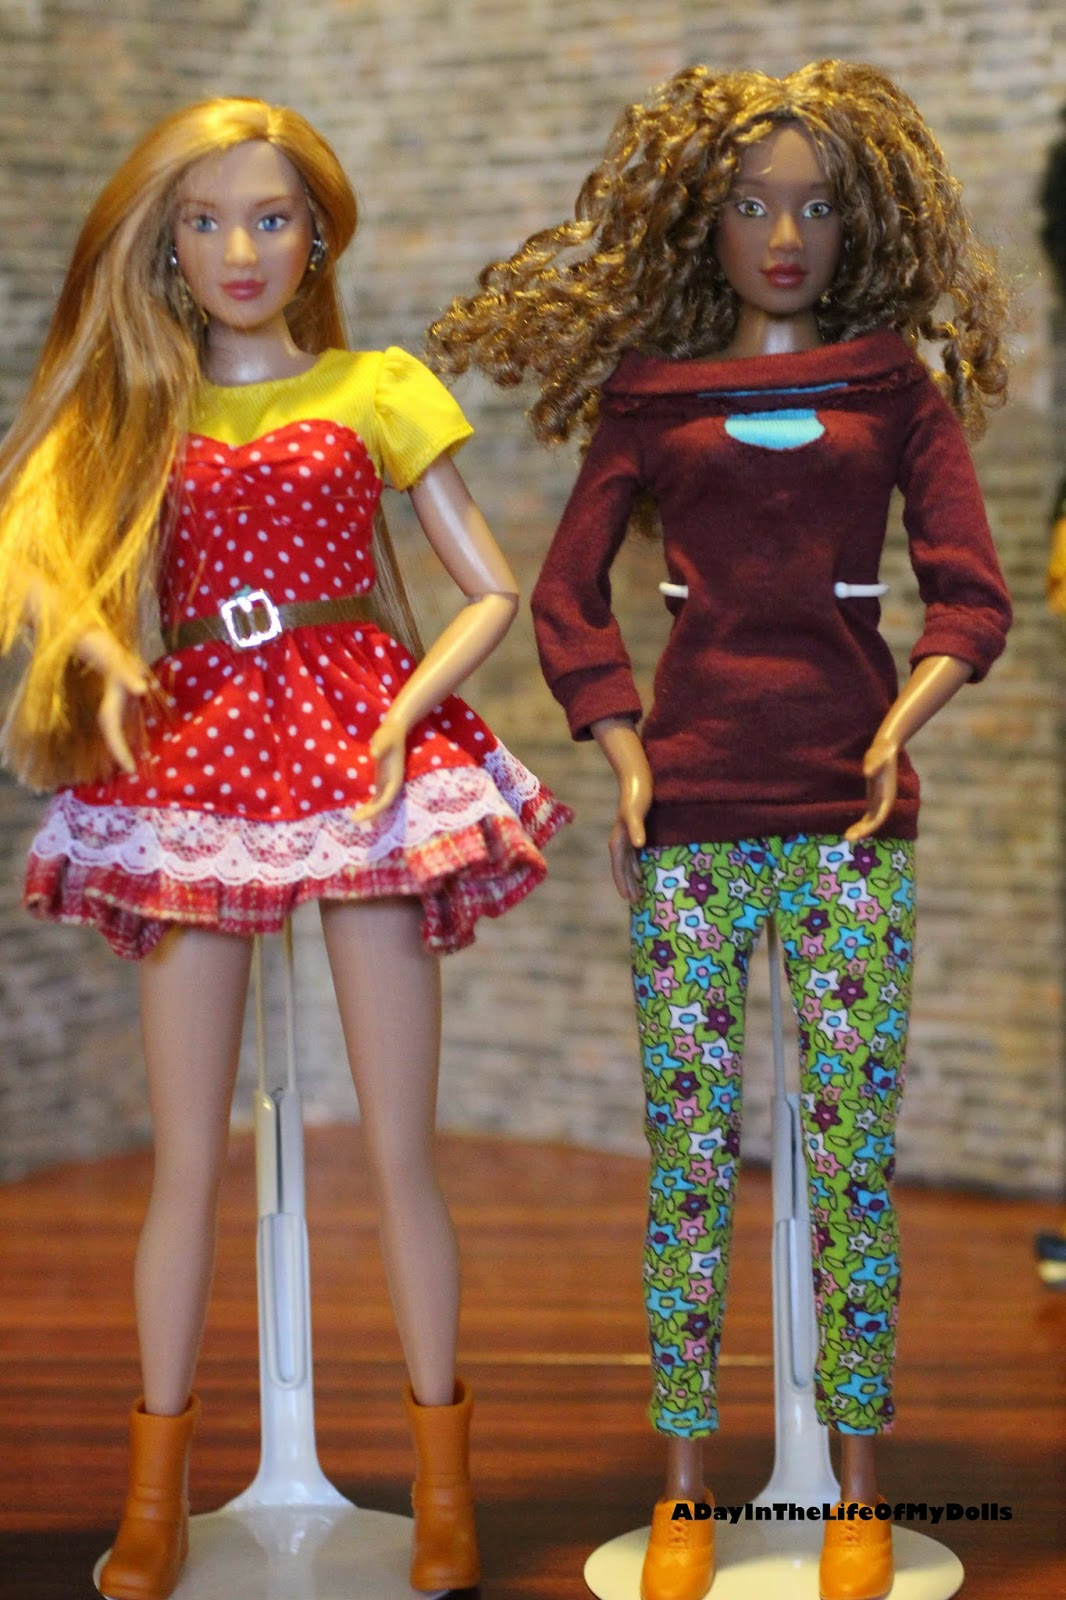 The Dolls Between Us: A Day In The Life Of My Dolls: New Prettie Girls Have Arrived